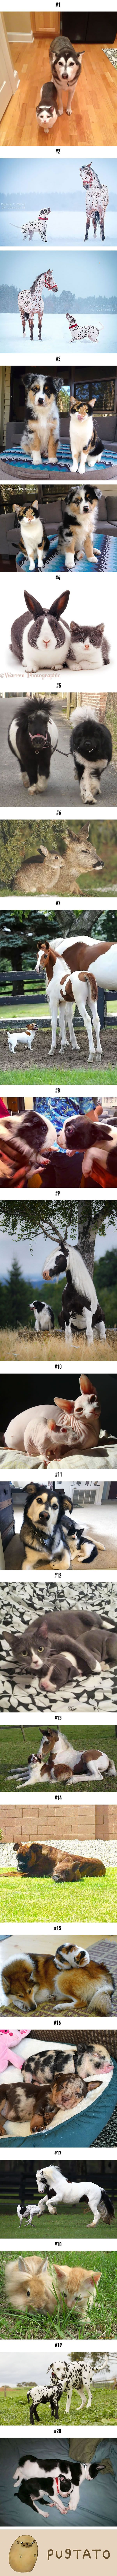 20 animal brothers from other mothers (via 9gag)